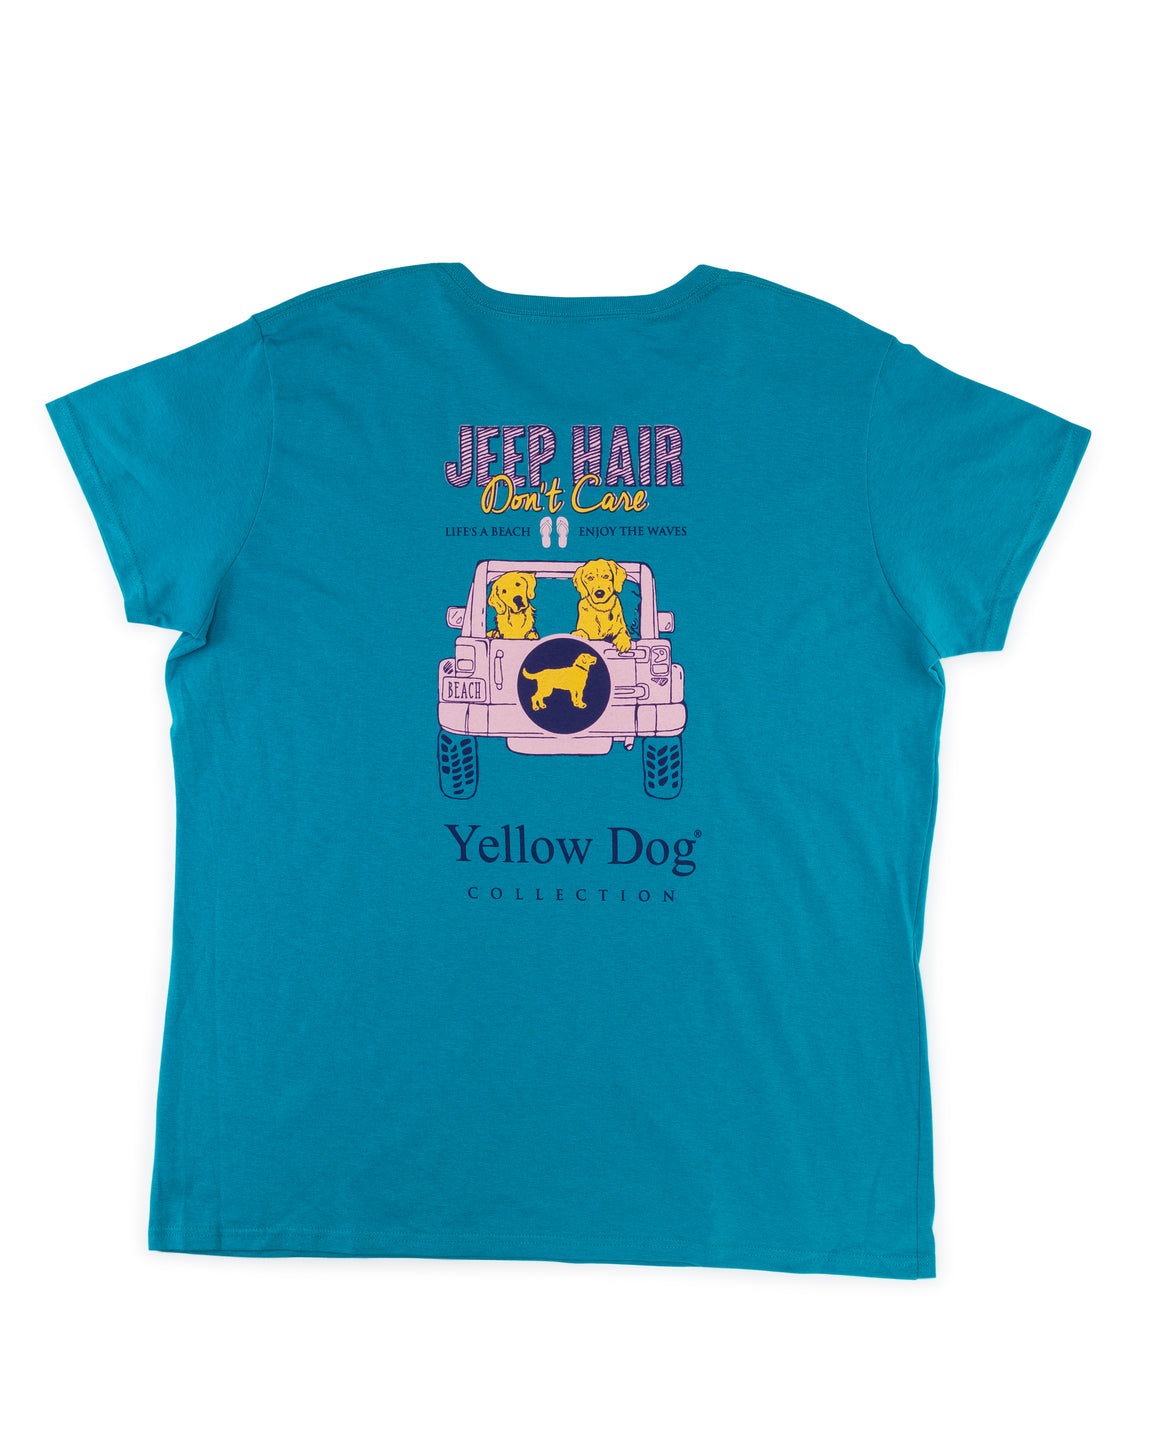 b2d4d4e0610 Women s Short Sleeve t-shirt Yellow Dog Collection  Jeep Hair  Caribbean  Blue